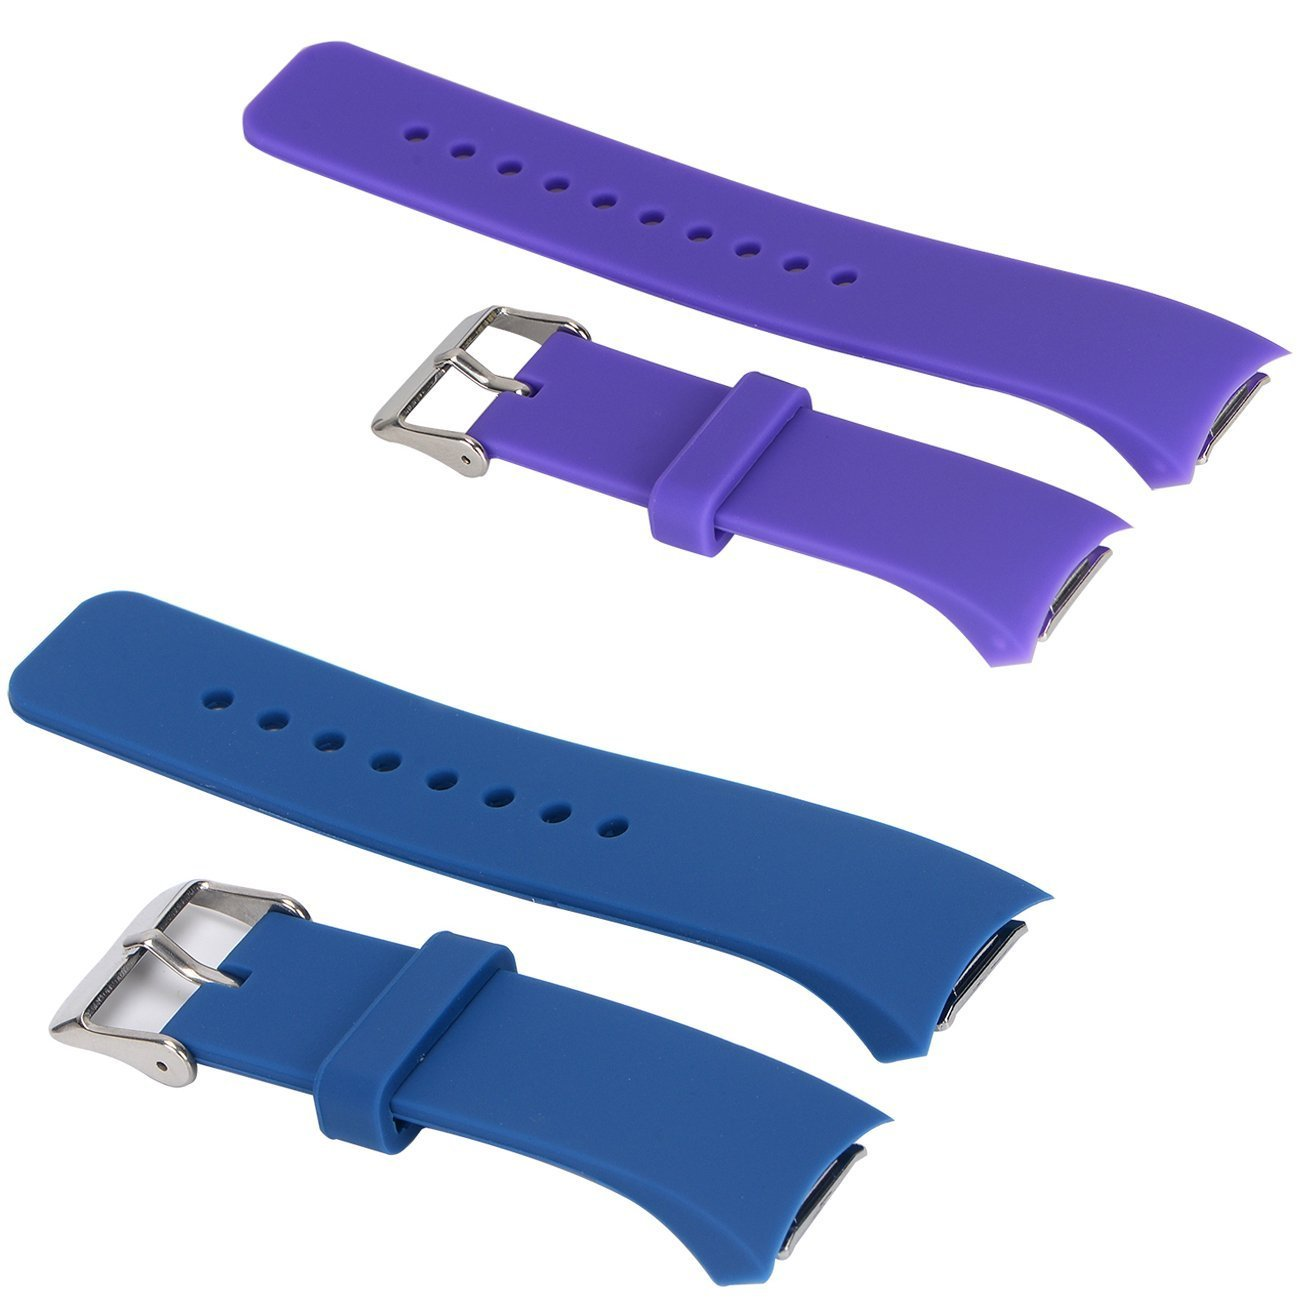 E ECSEM 2pcs Small Bands for Gear Fit2 Pro Watch, Replacement Soft Silicone Bands Straps for Samsung Gear Fit2 Pro Smart Fitness Band and Samsung Gear Fit2 Smartwatch : Darkblue+Purple